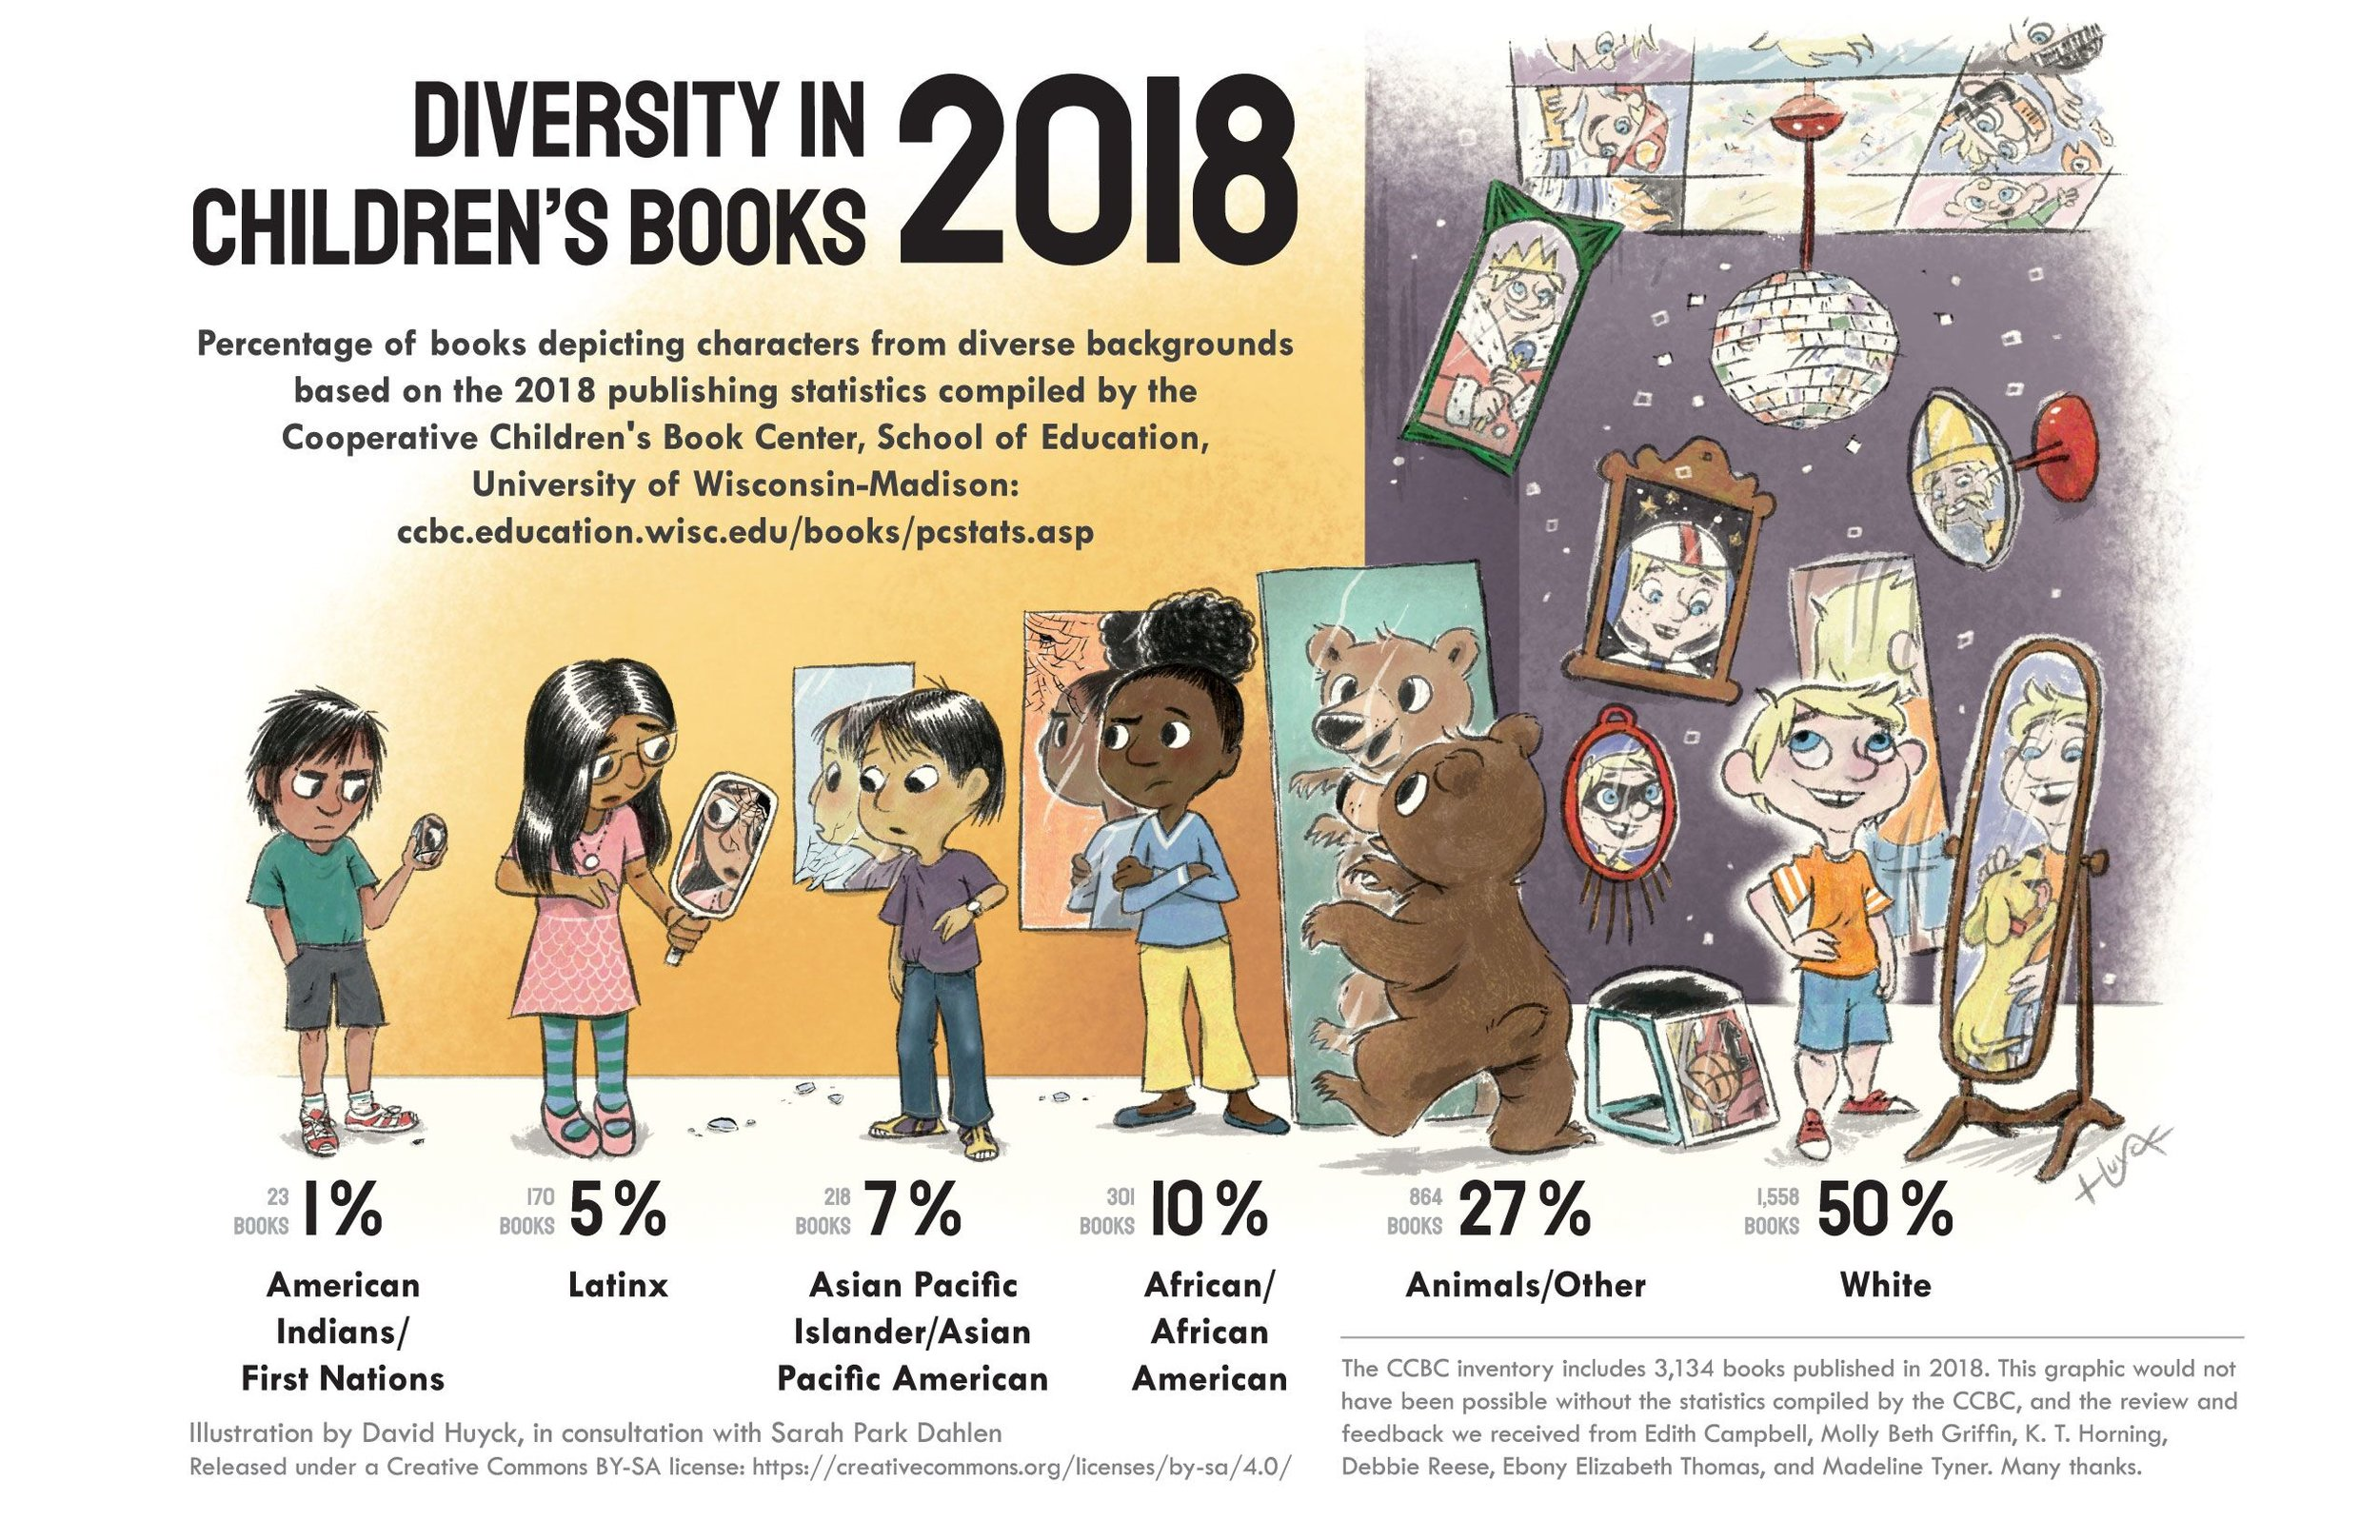 Infographic citation: Huyck, David and Sarah Park Dahlen. (2019 June 19). Diversity in Children's Books 2018.   sarahpark.com   blog. Created in consultation with Edith Campbell, Molly Beth Griffin, K. T. Horning, Debbie Reese, Ebony Elizabeth Thomas, and Madeline Tyner, with statistics compiled by the Cooperative Children's Book Center, School of Education, University of Wisconsin-Madison:  http://ccbc.education.wisc.edu/books/pcstats.asp . Retrieved from  https://readingspark.wordpress.com/2019/06/19/picture-this-diversity-in-childrens-books-2018-infographic/ .